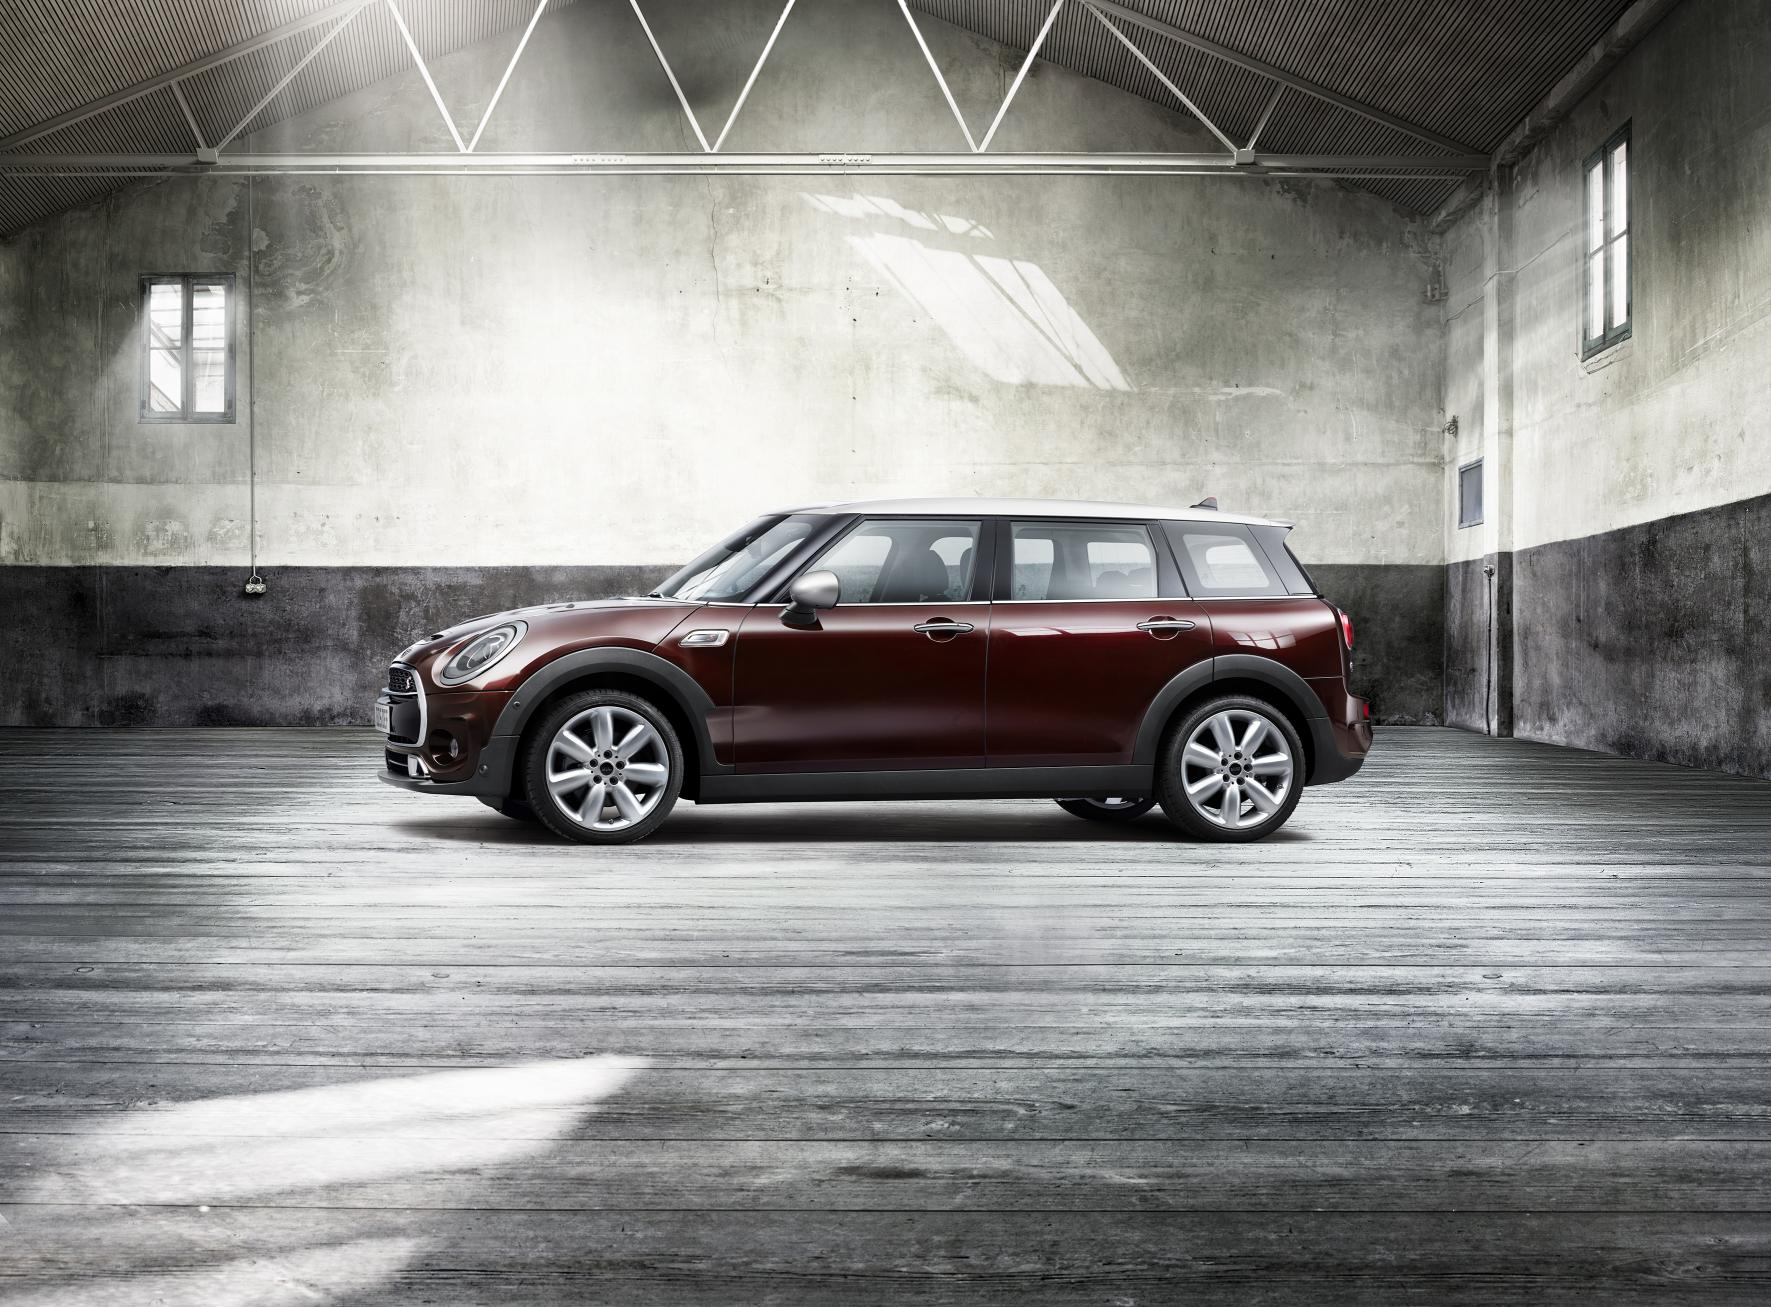 2016 Mini Clubman Uk Prices Revealed Starting At 19995